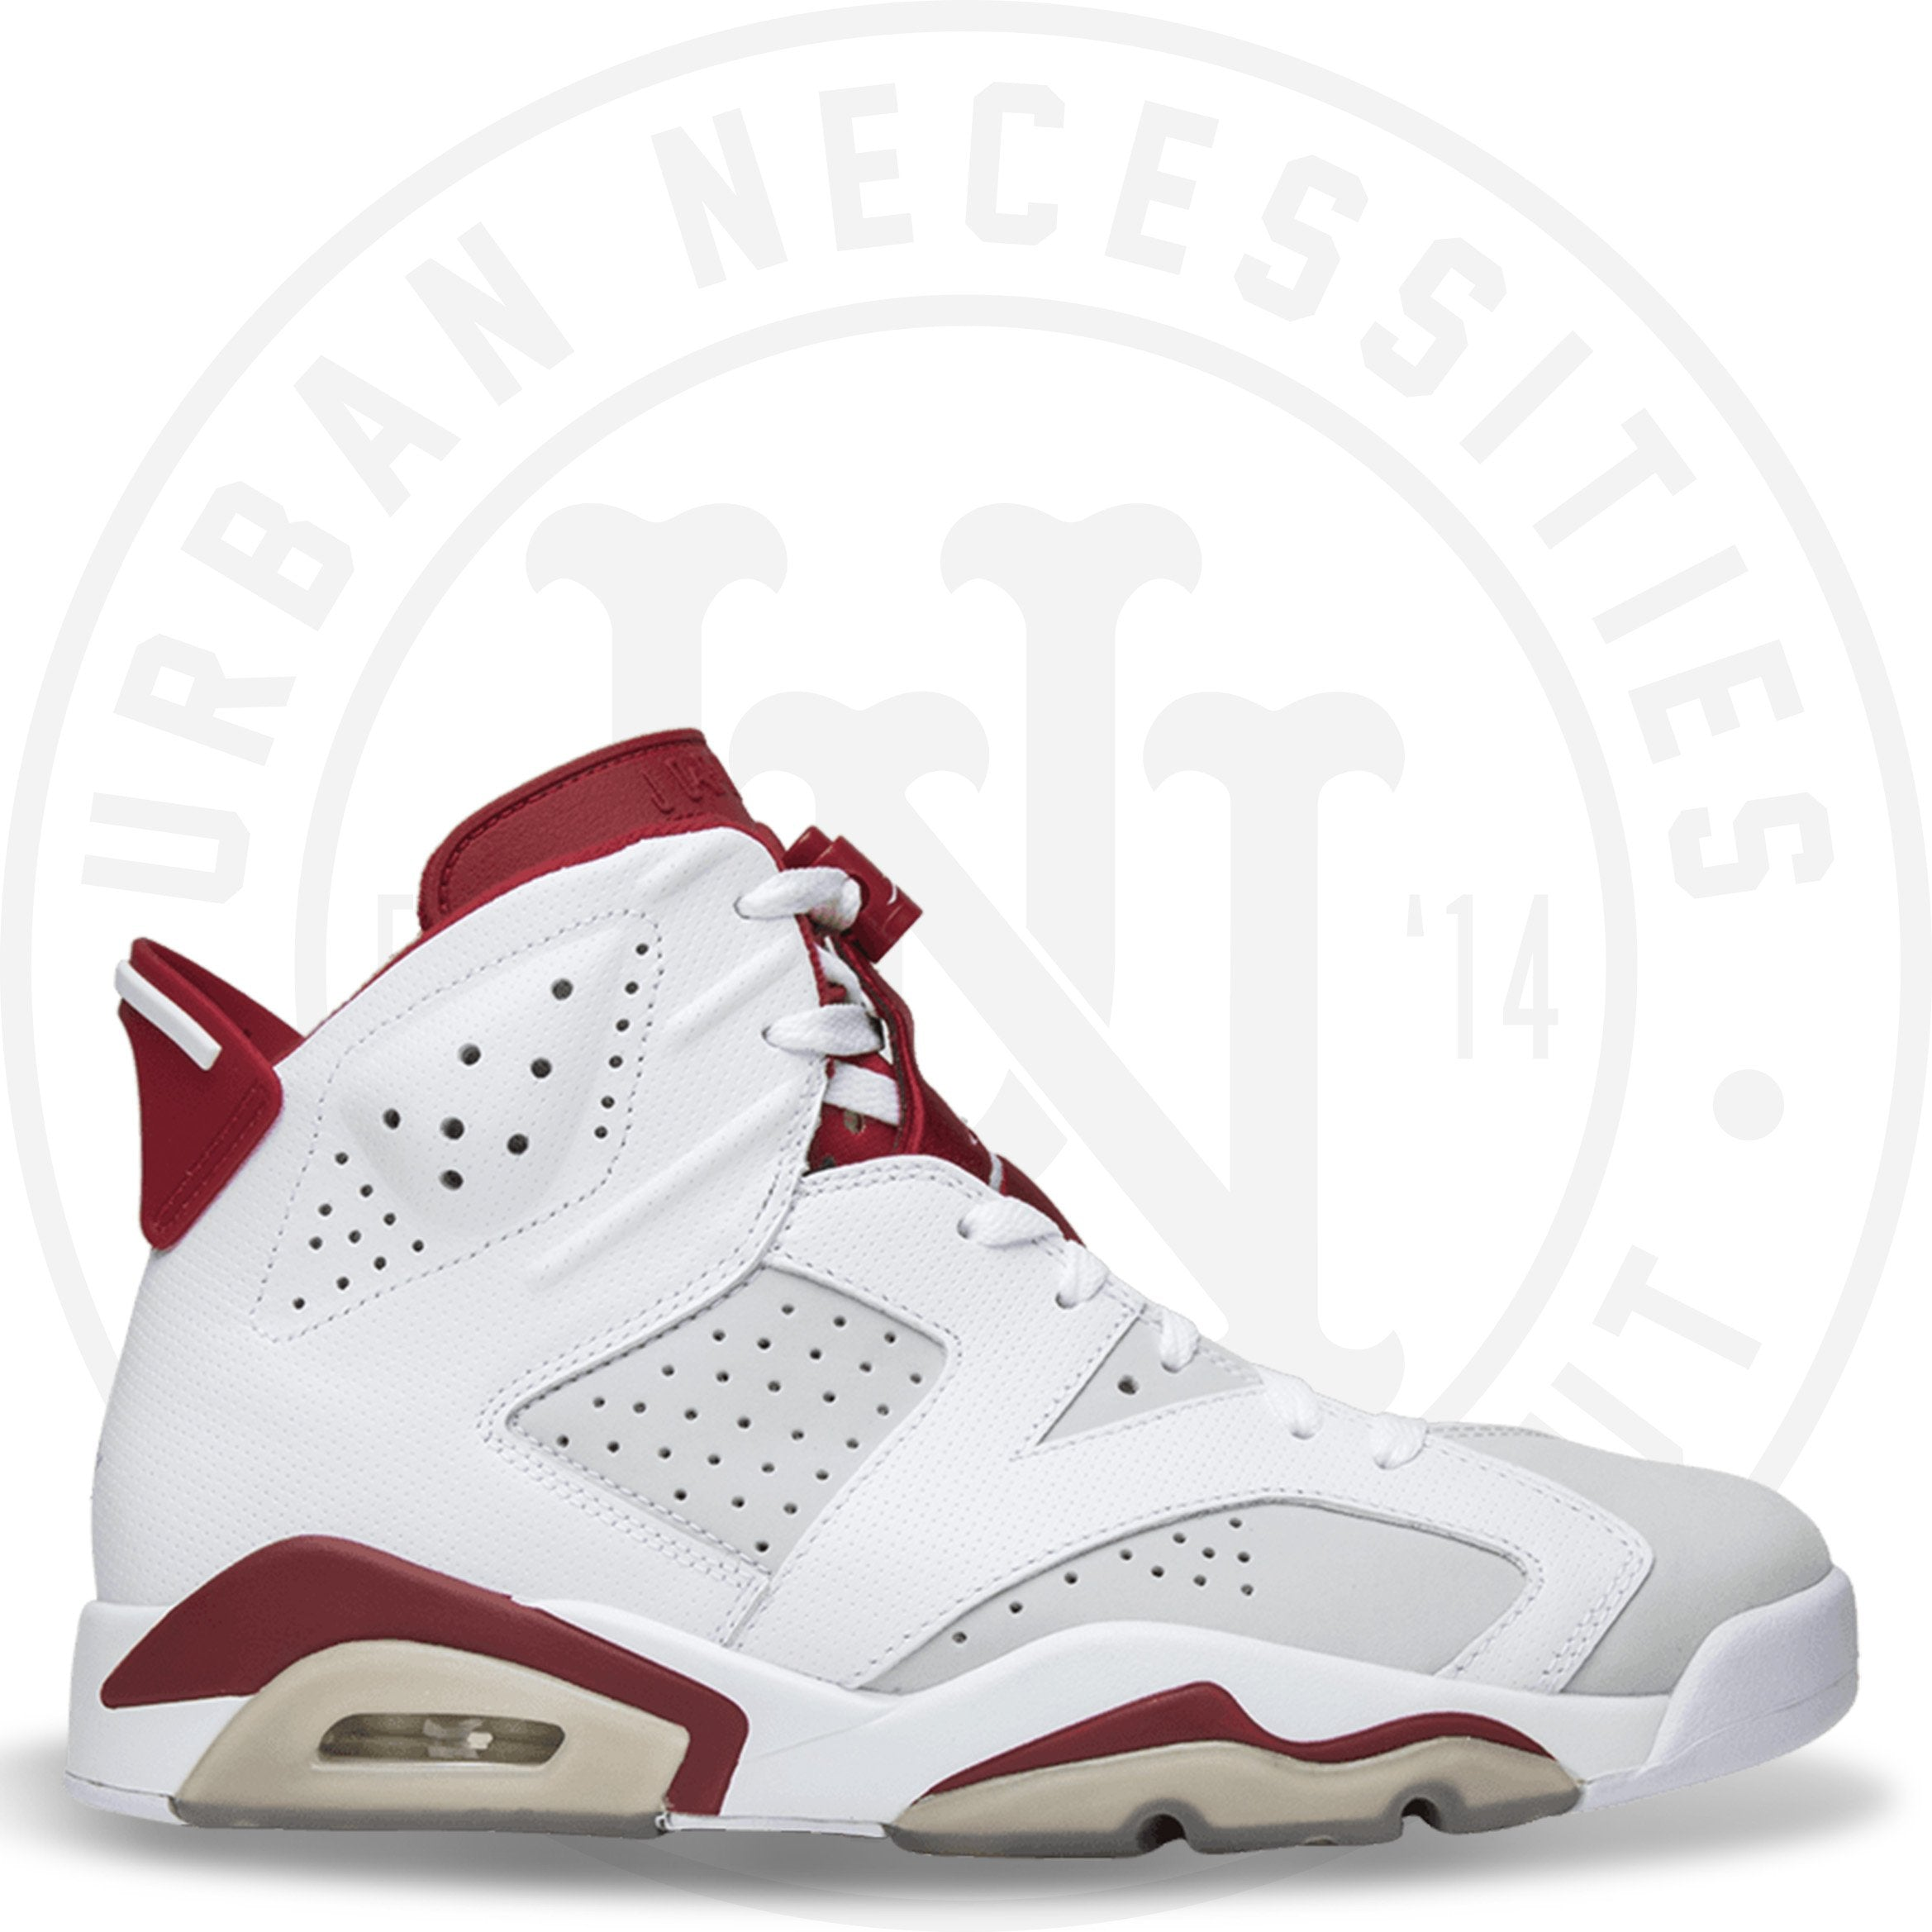 c980e90868b952 Air Jordan 6 Retro  Alternate  - 384664 113 – Urban Necessities